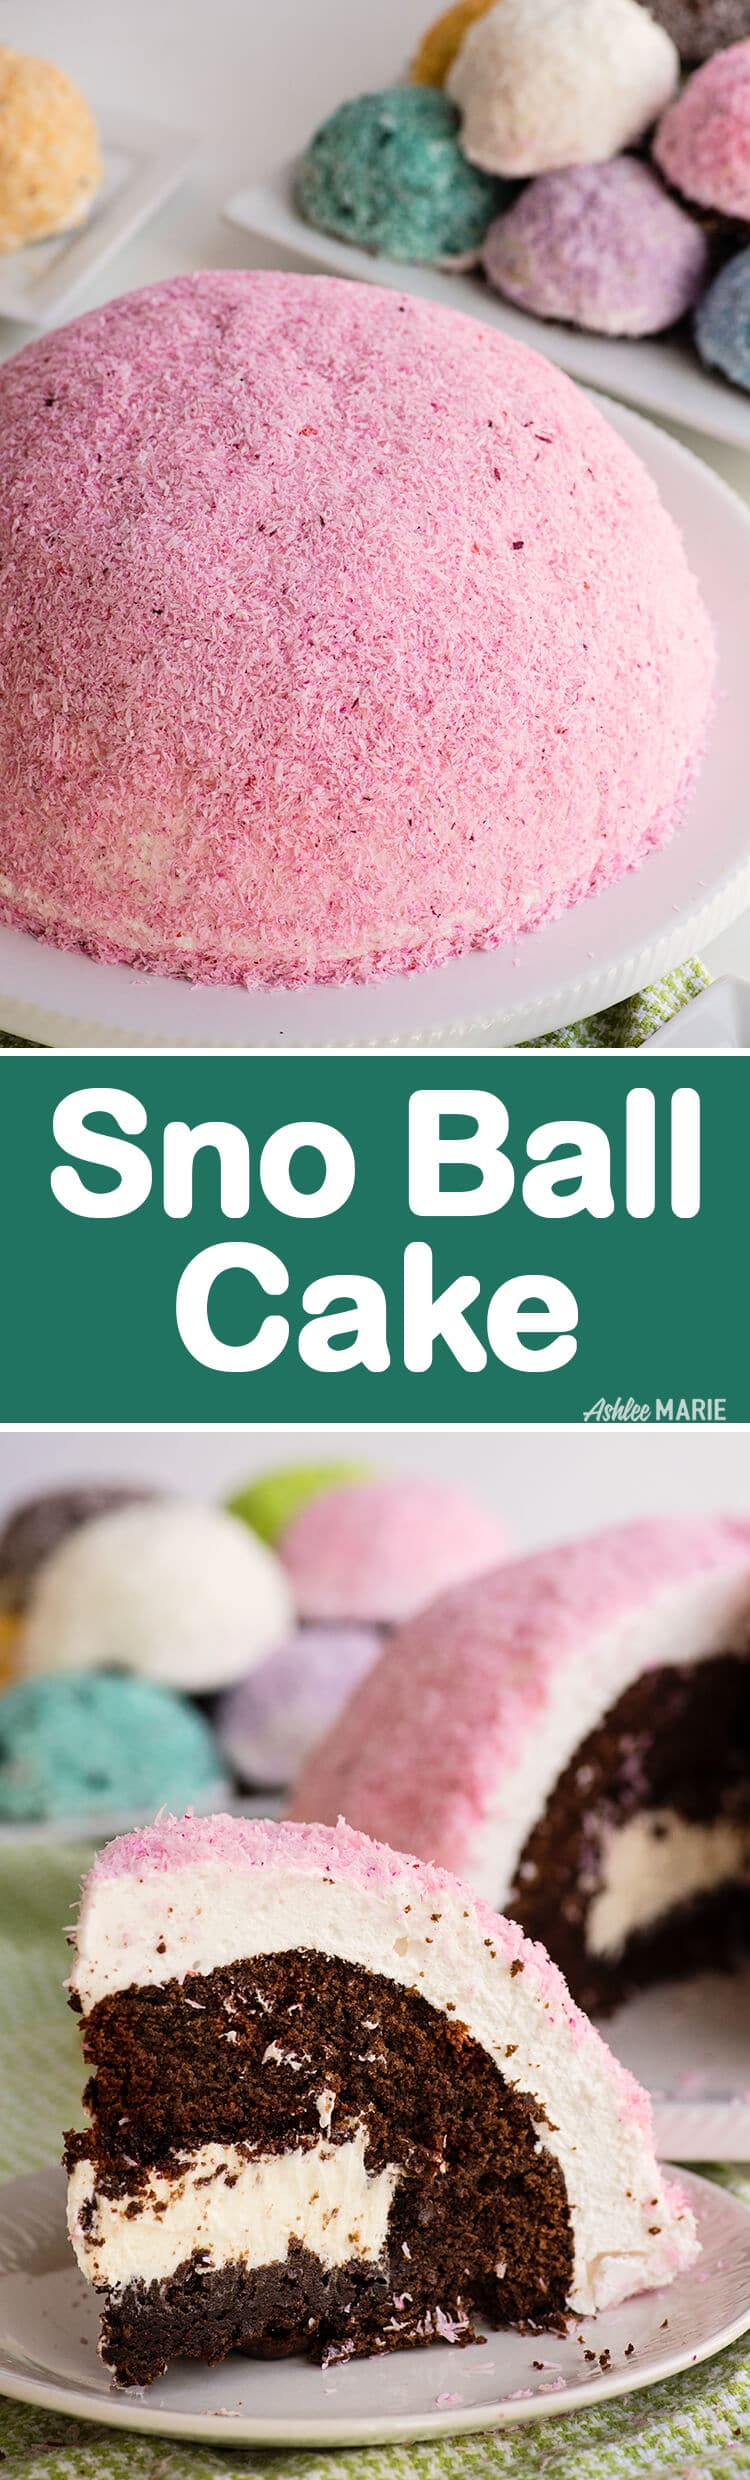 make a giant hostess sno ball cake - video tutorial and recipe